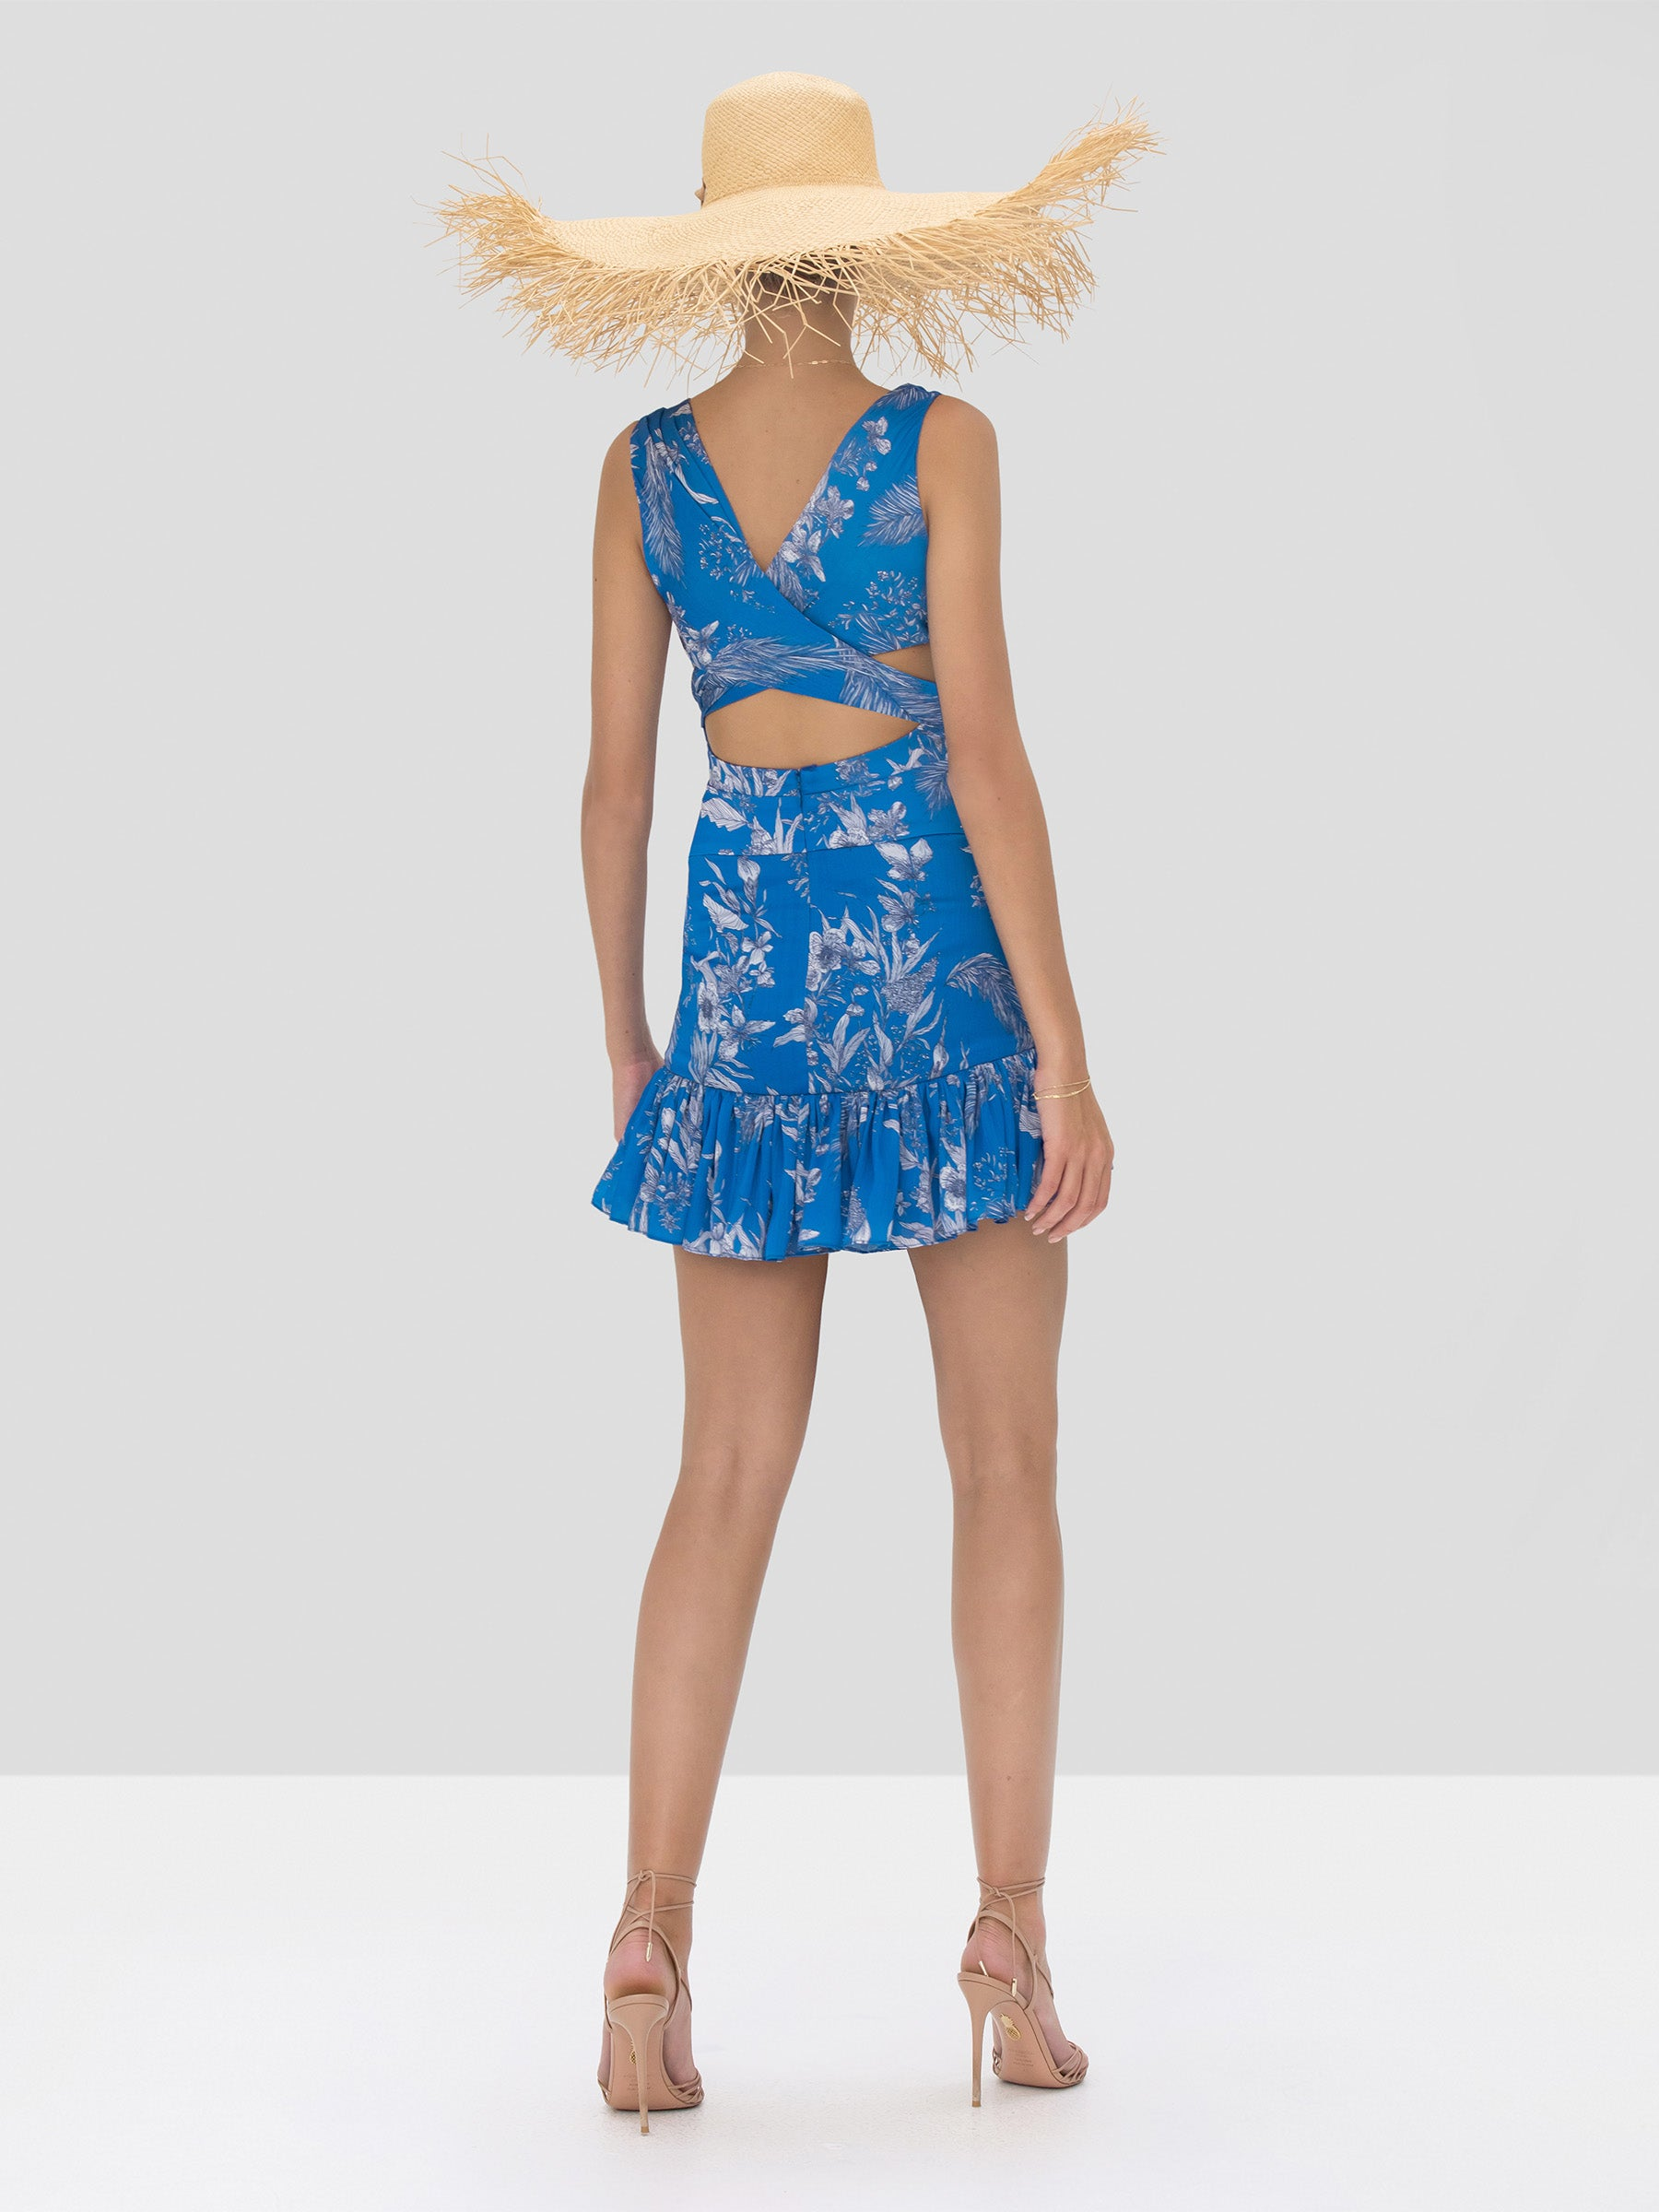 Alexis Cassara Dress in Blue Palm from Spring Summer 2020 Collection - Rear View